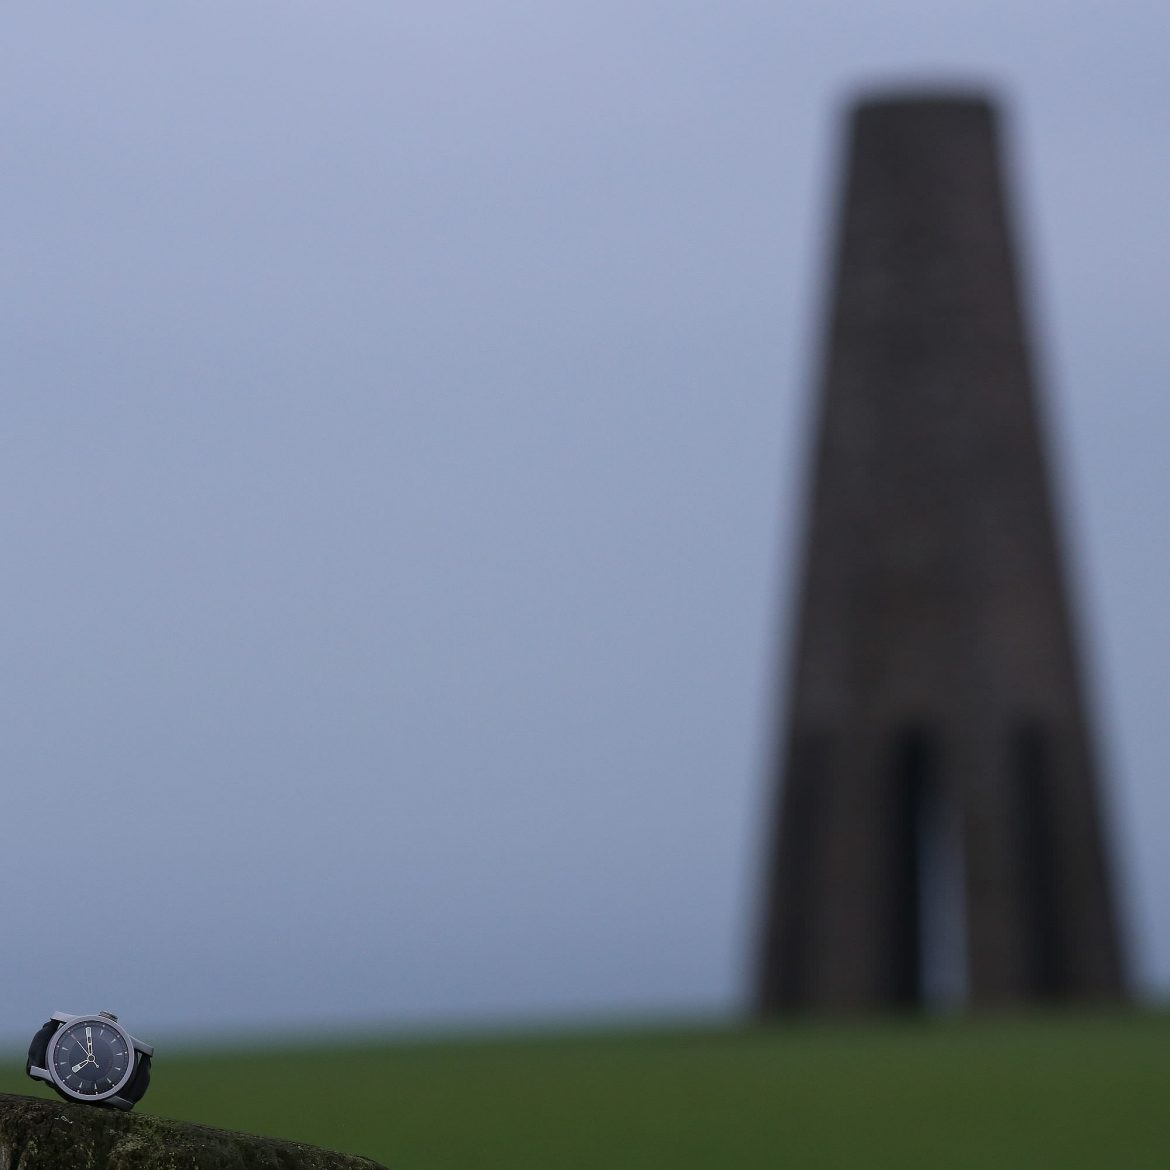 The Daymark Tower